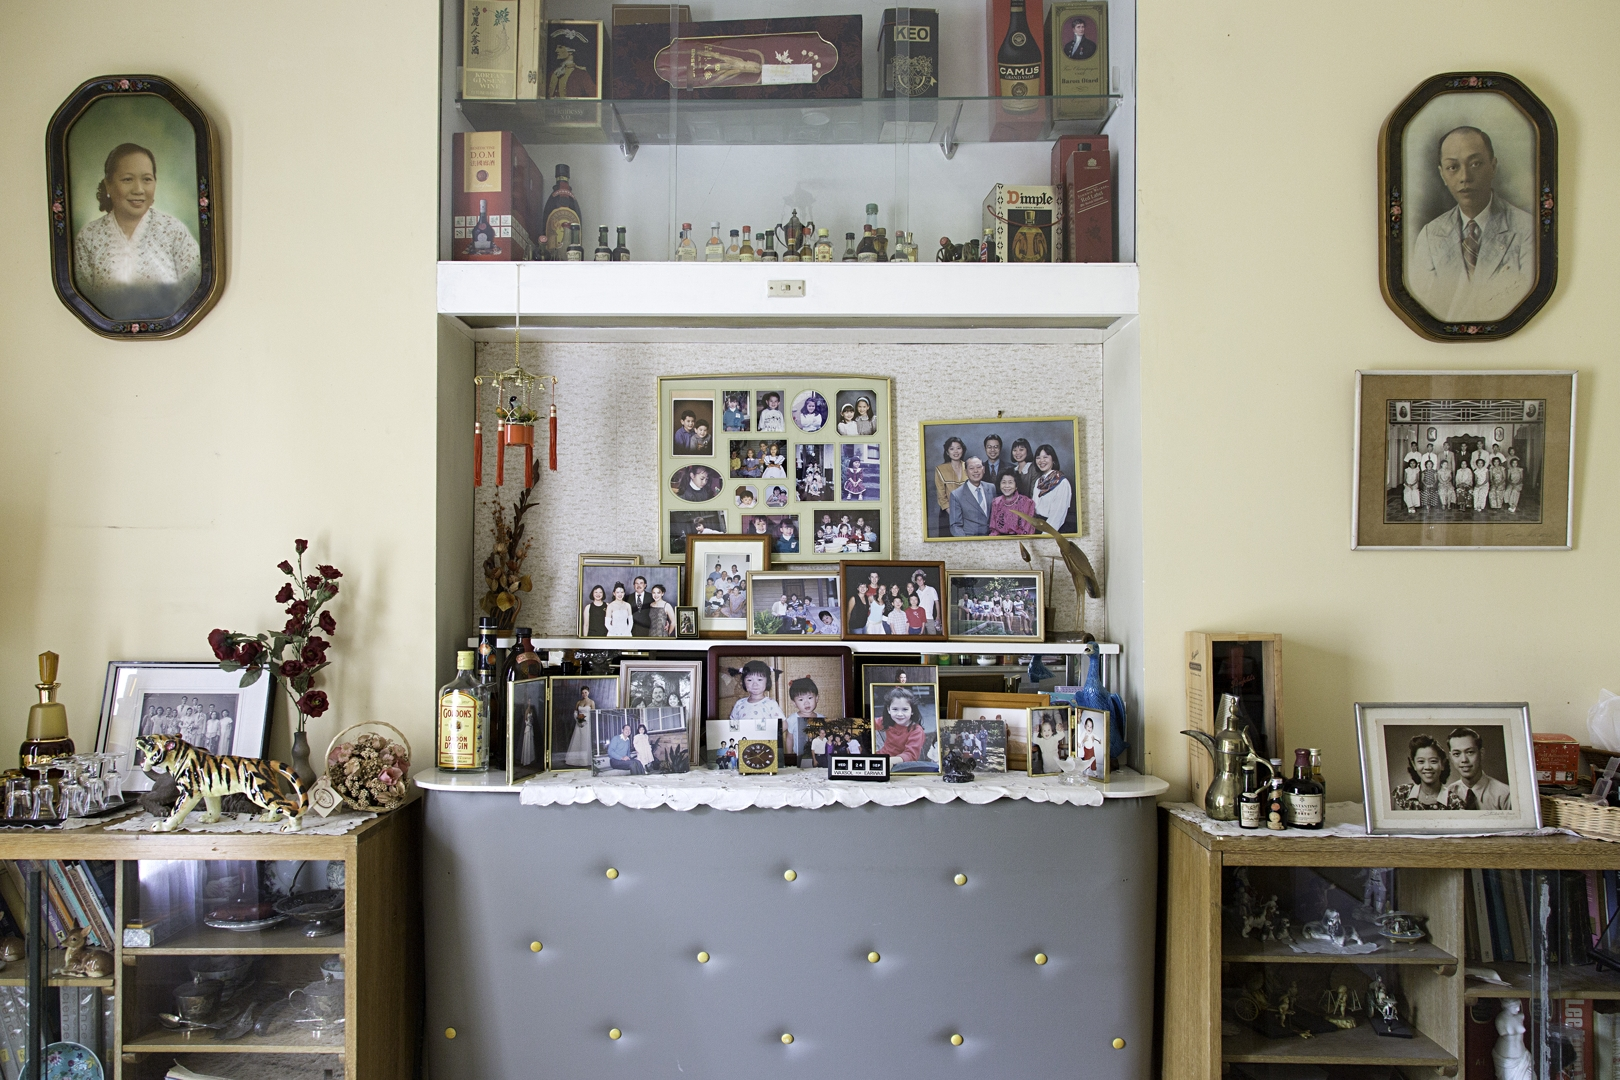 Pia JOHNSON, Family Portrait Wall from Por Por's House series(2014), archival inkjet print, dimensions variable, image courtesy of the artist.  image